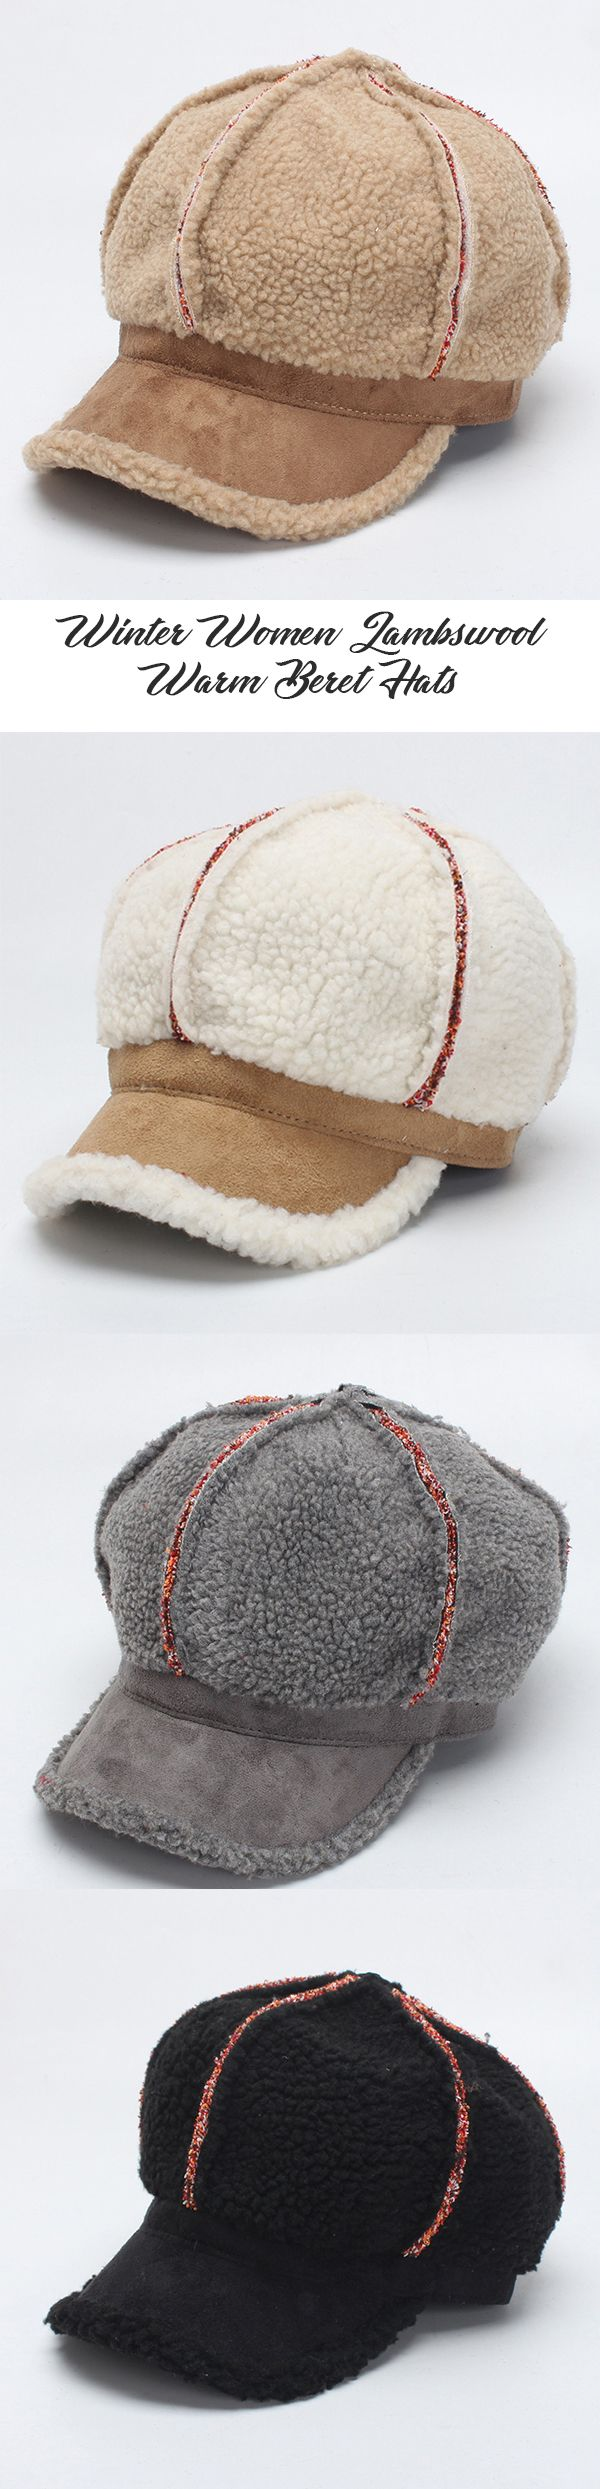 Best 25 crochet baseball hats ideas on pinterest crochet hats winter women lambwool warm beret hats casual windproof octagonal cap newsboy hat bankloansurffo Gallery